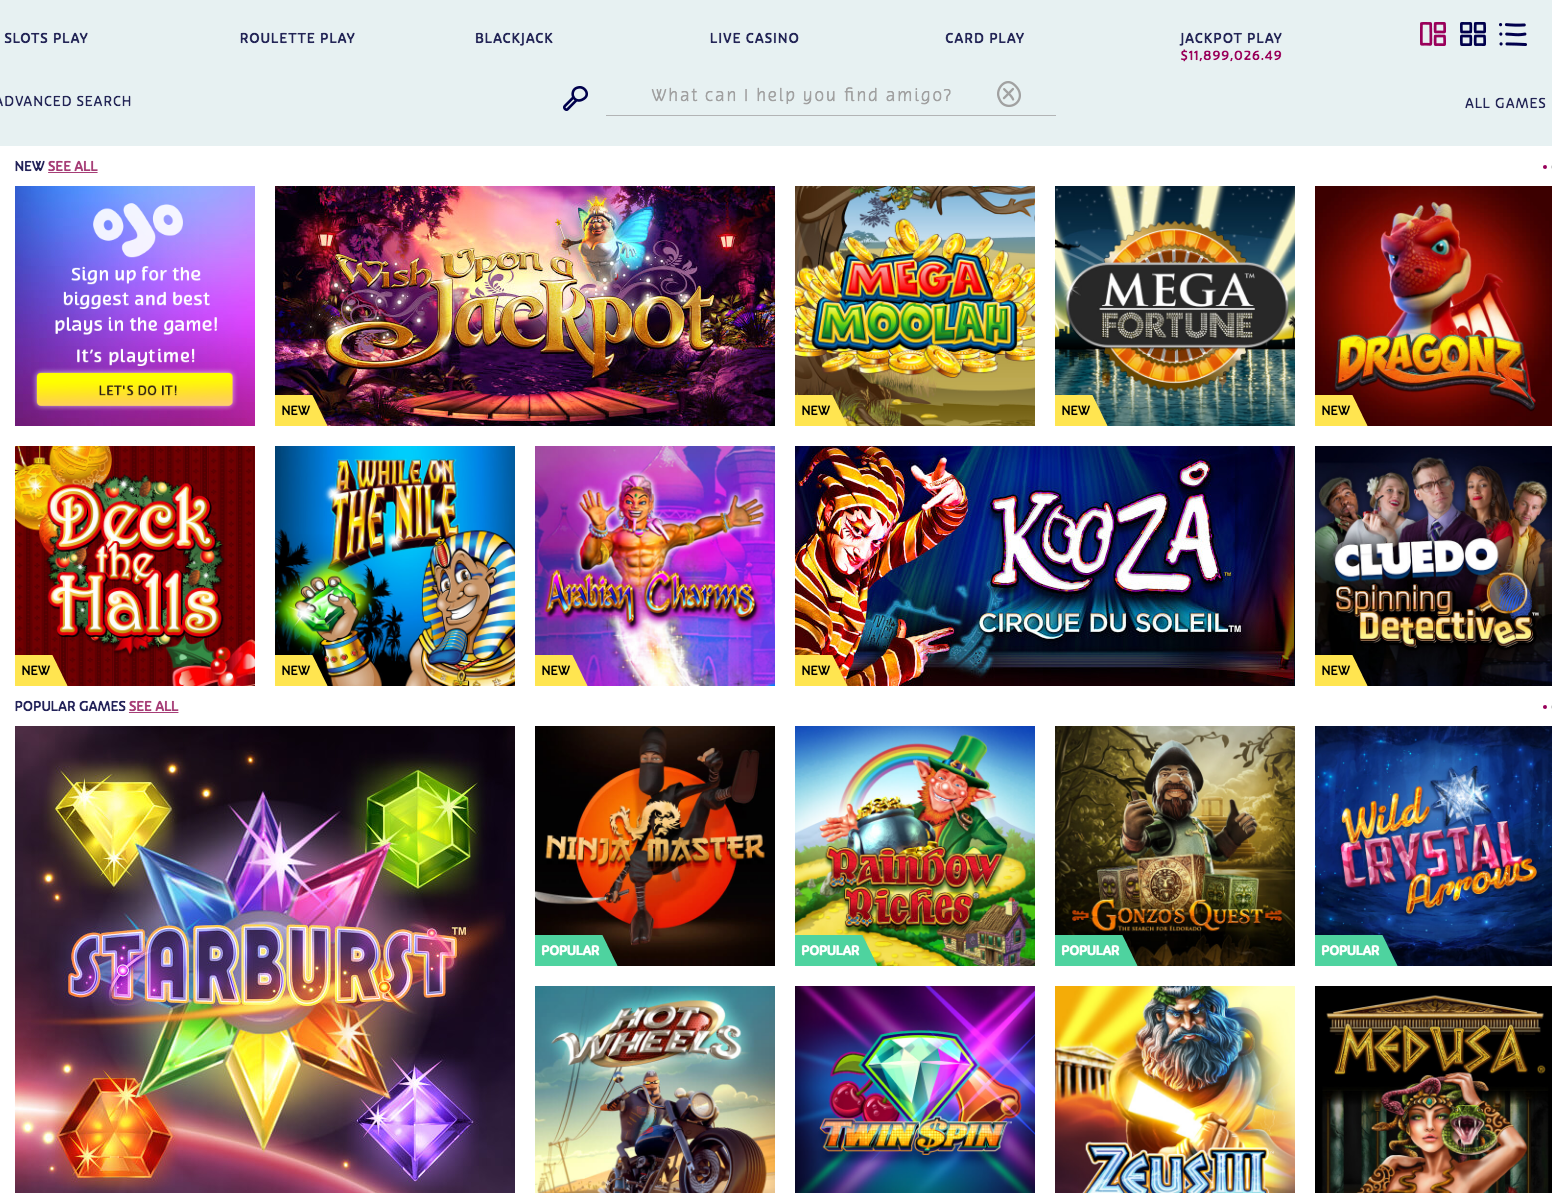 Progressive Jackpots Archives - Get Free Spins at the Best UK Online Casino | PlayOJO